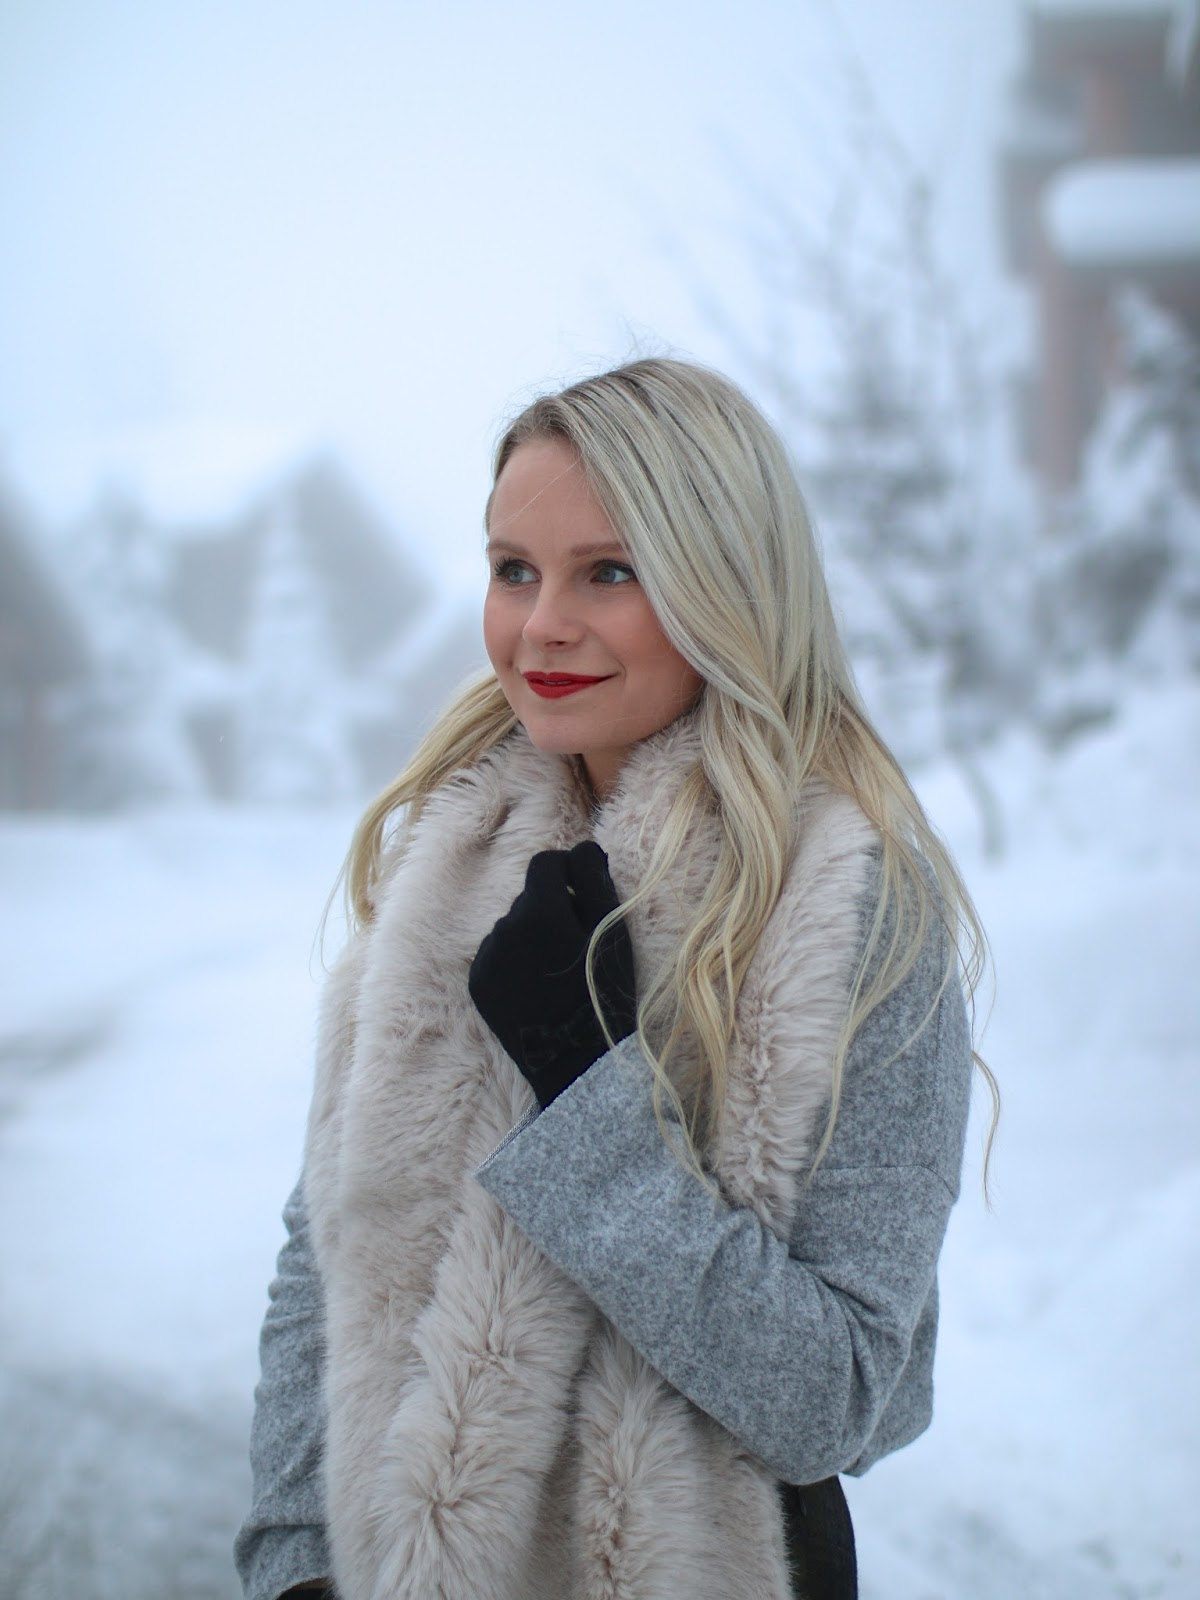 girly outfit and red lips in the snow during the holidays